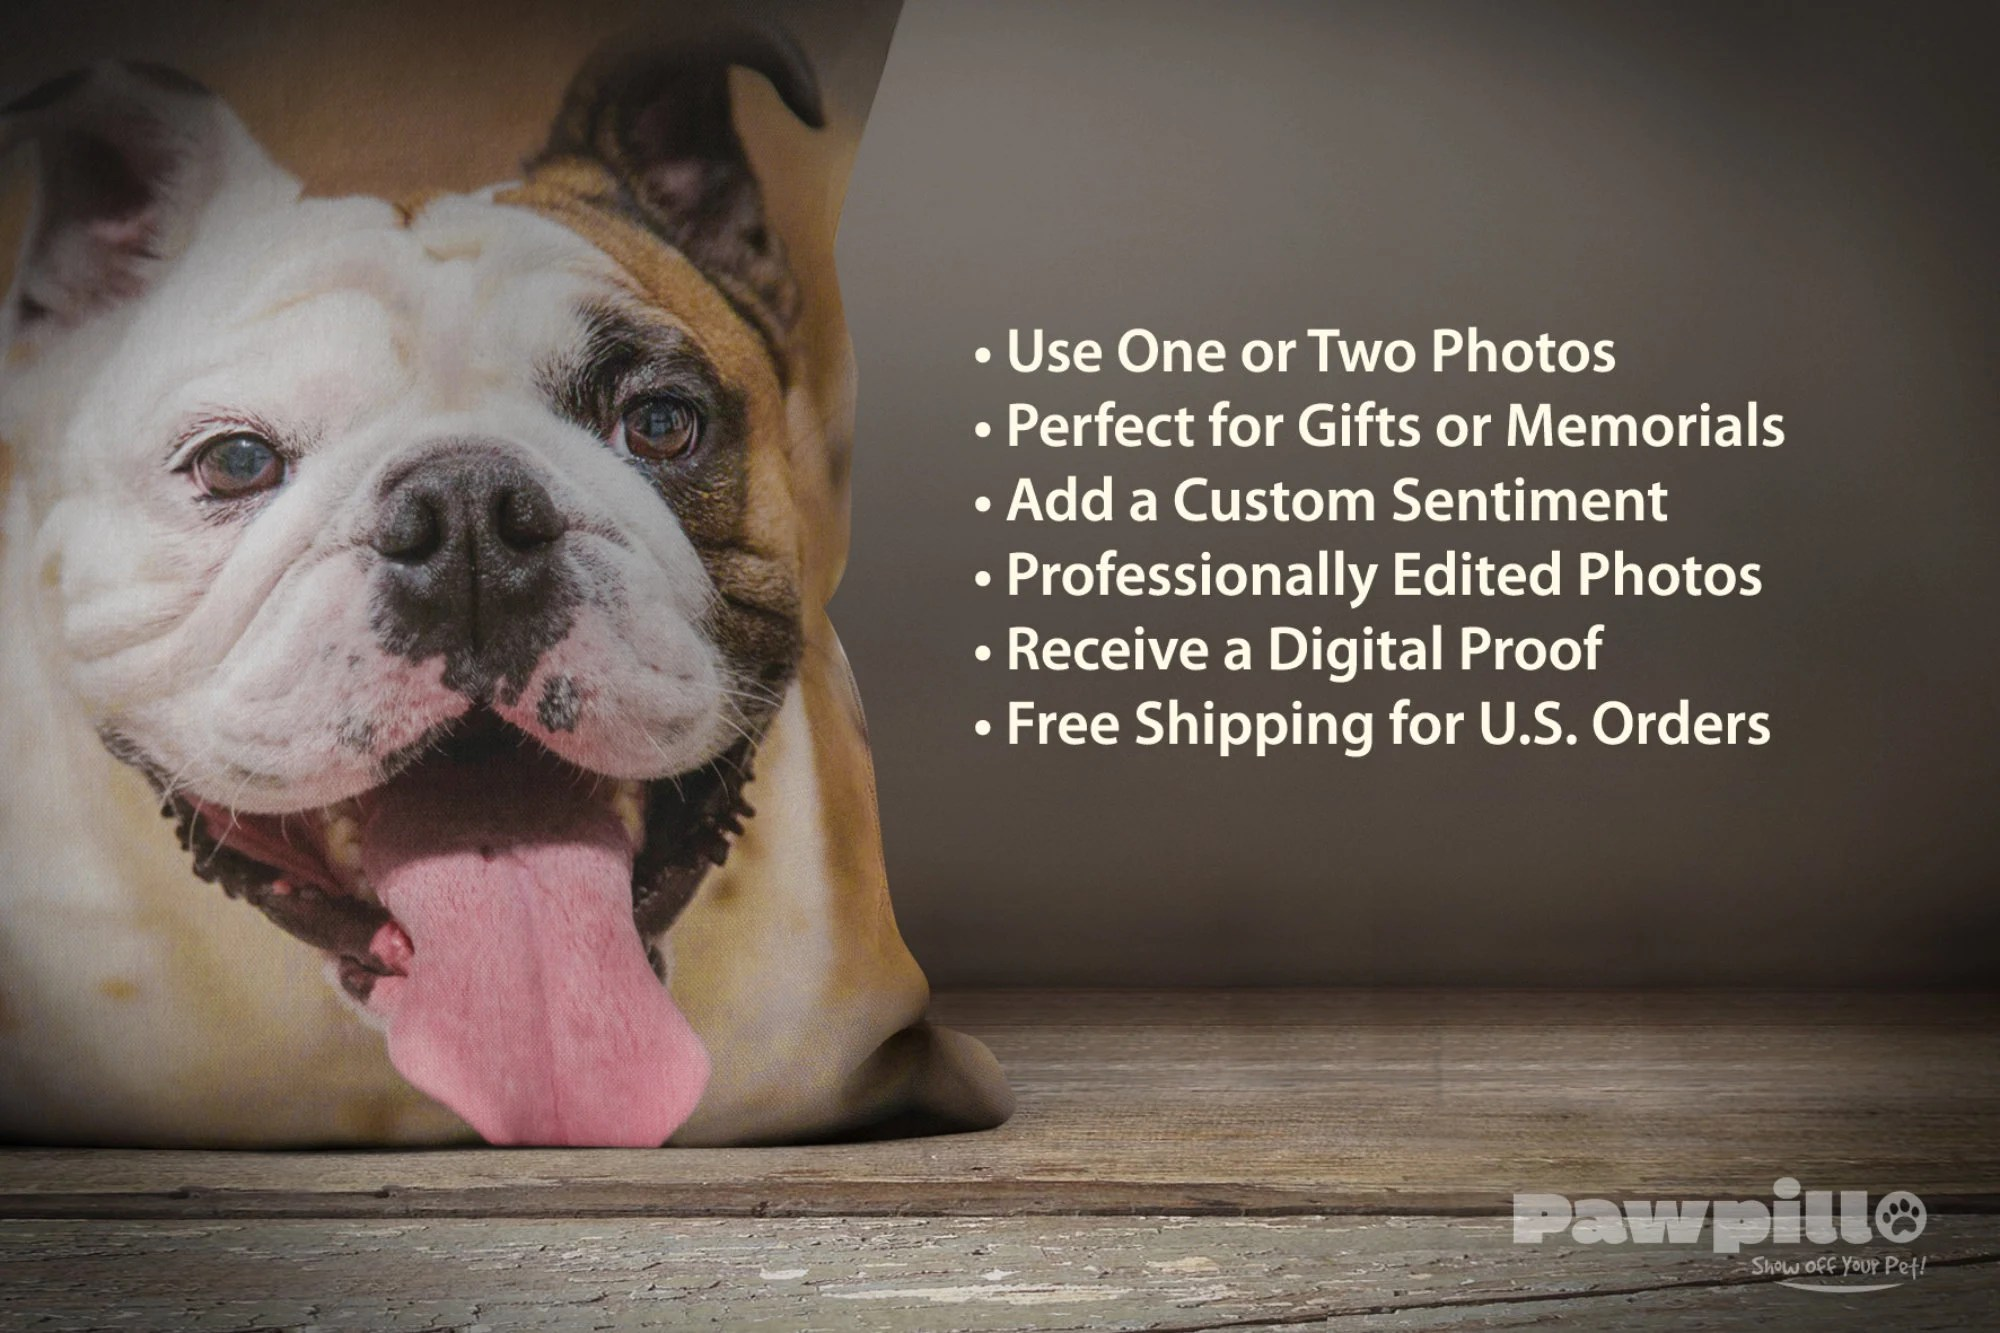 Fascinating Gallery Photo Gallery Photo Gallery Photo Pet Dog Custom Pet Custom Dog Pet Pet Memorial Gifts Ornaments Pet Memorial Gifts Singapore gifts Pet Memorial Gifts